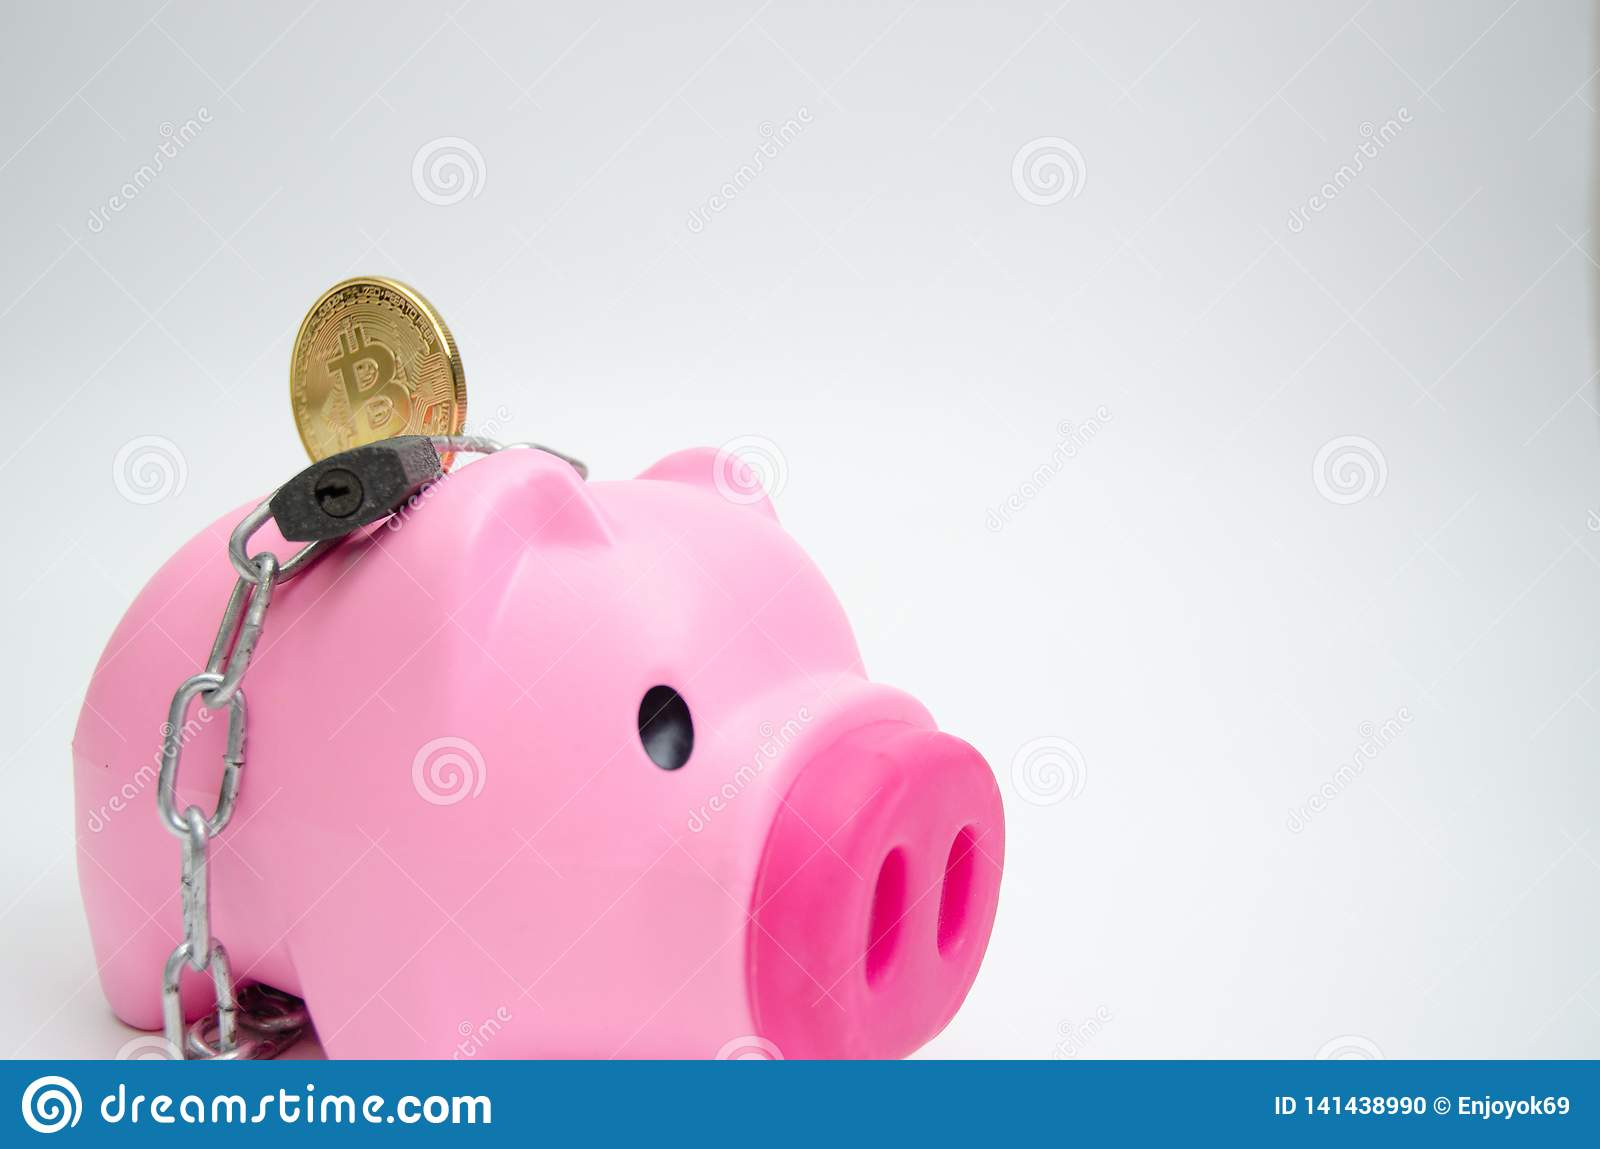 Pink pig jar For coin.